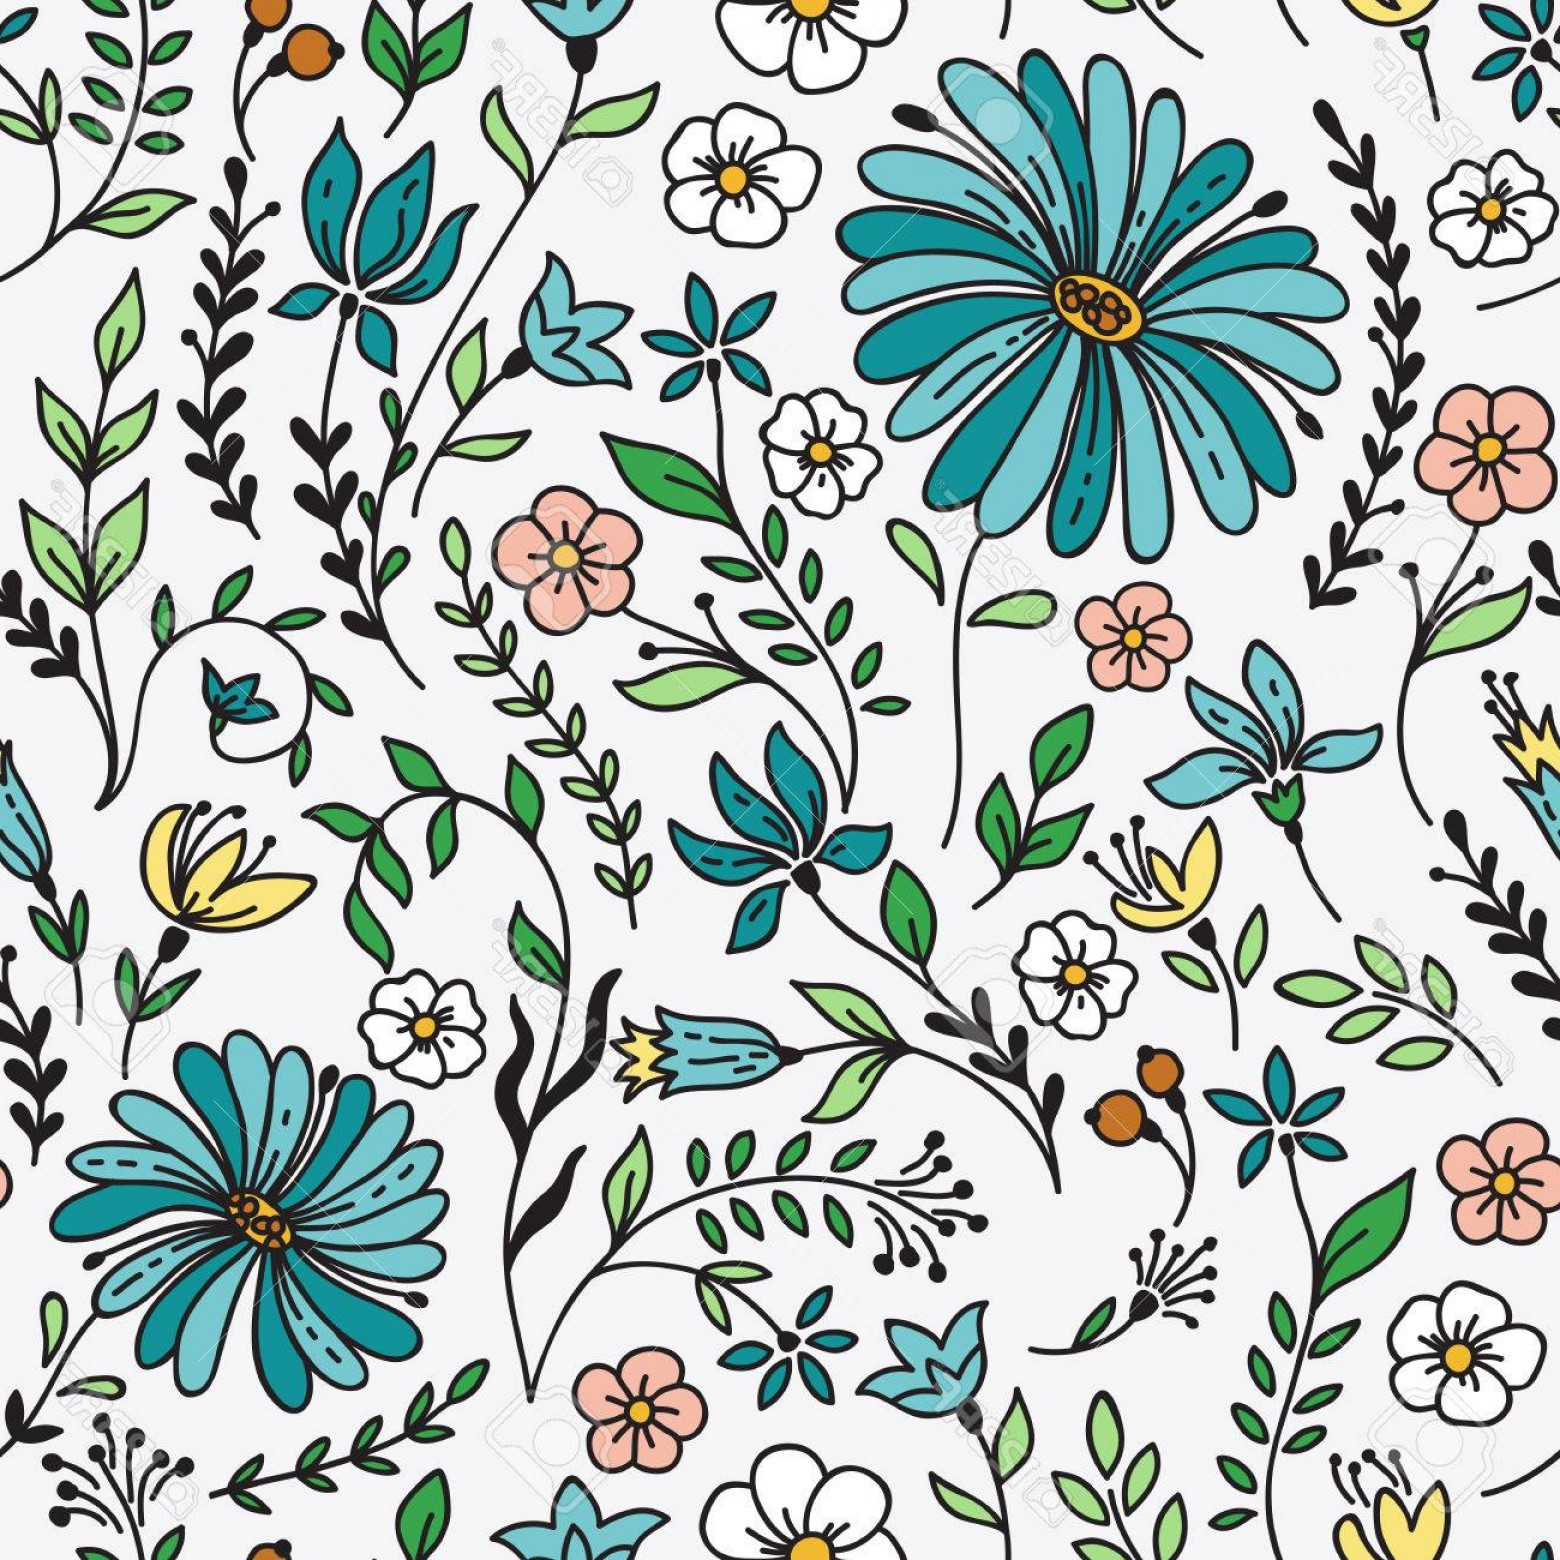 Free Vintage Vector Desktop Wallpaper: Photostock Vector Seamless Vintage Pattern With Camomile And Flowers Can Be Used For Desktop Wallpaper Or Frame For A